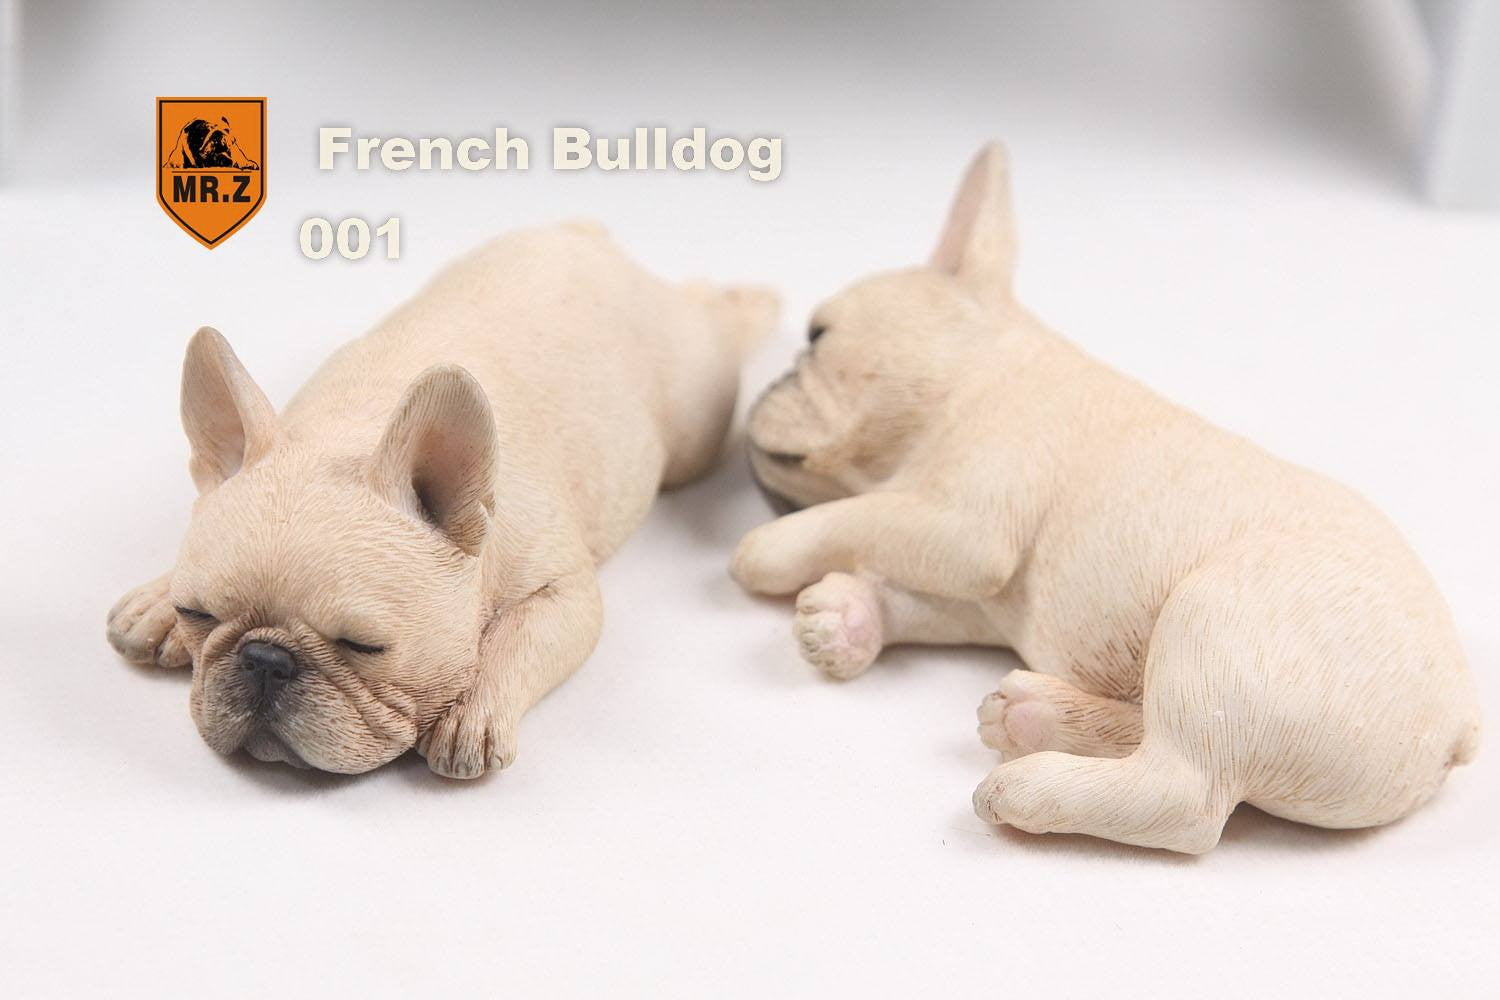 MR.Z - Real Animal Series No.9 - 1/6th Scale French Bulldog (Sleep Mode) 001-005 - Marvelous Toys - 2